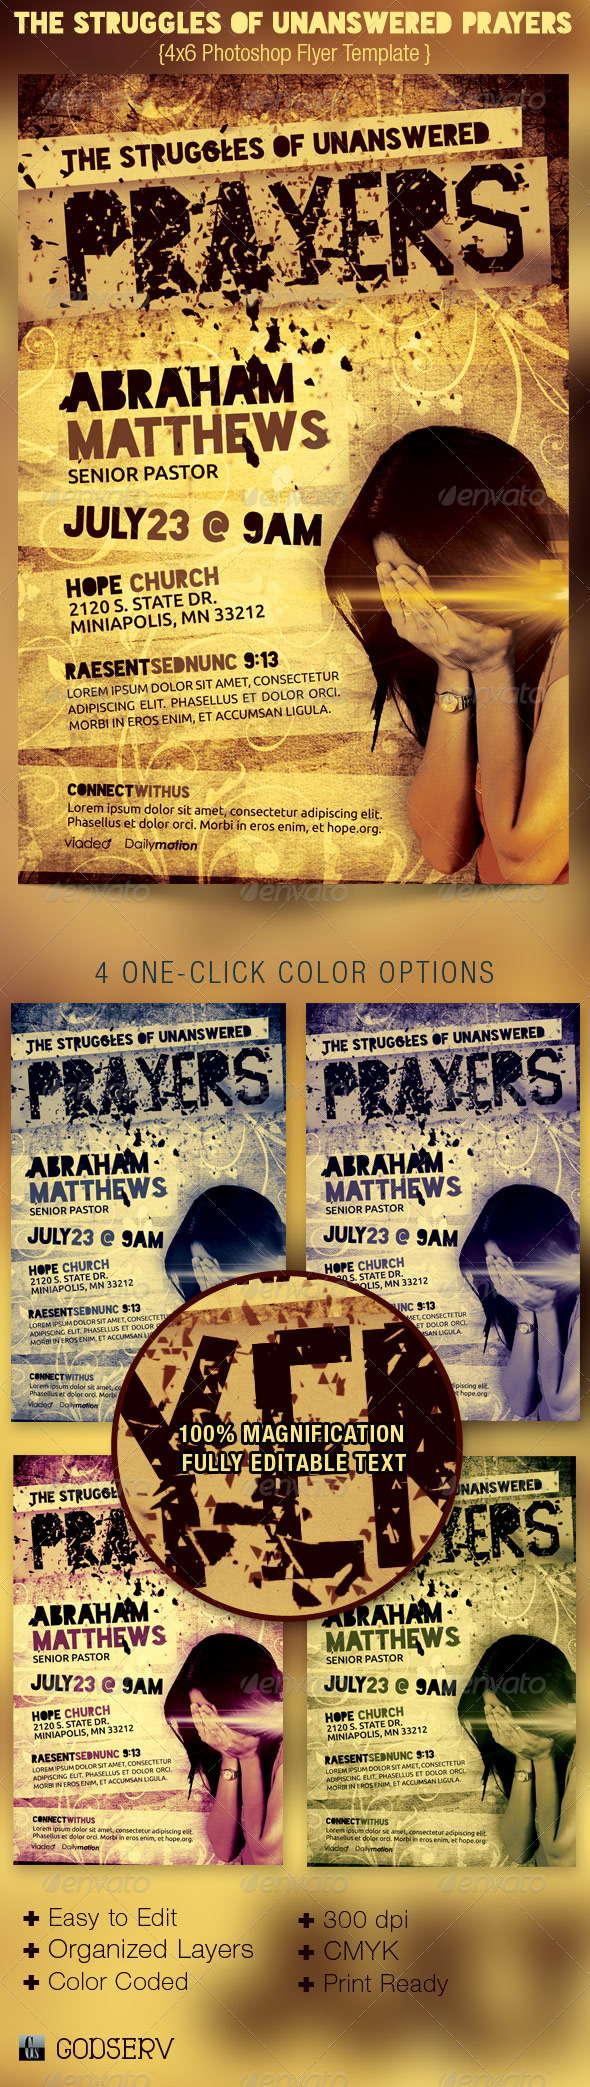 The Struggles of Unanswered Prayers Flyer Template - Church Flyers